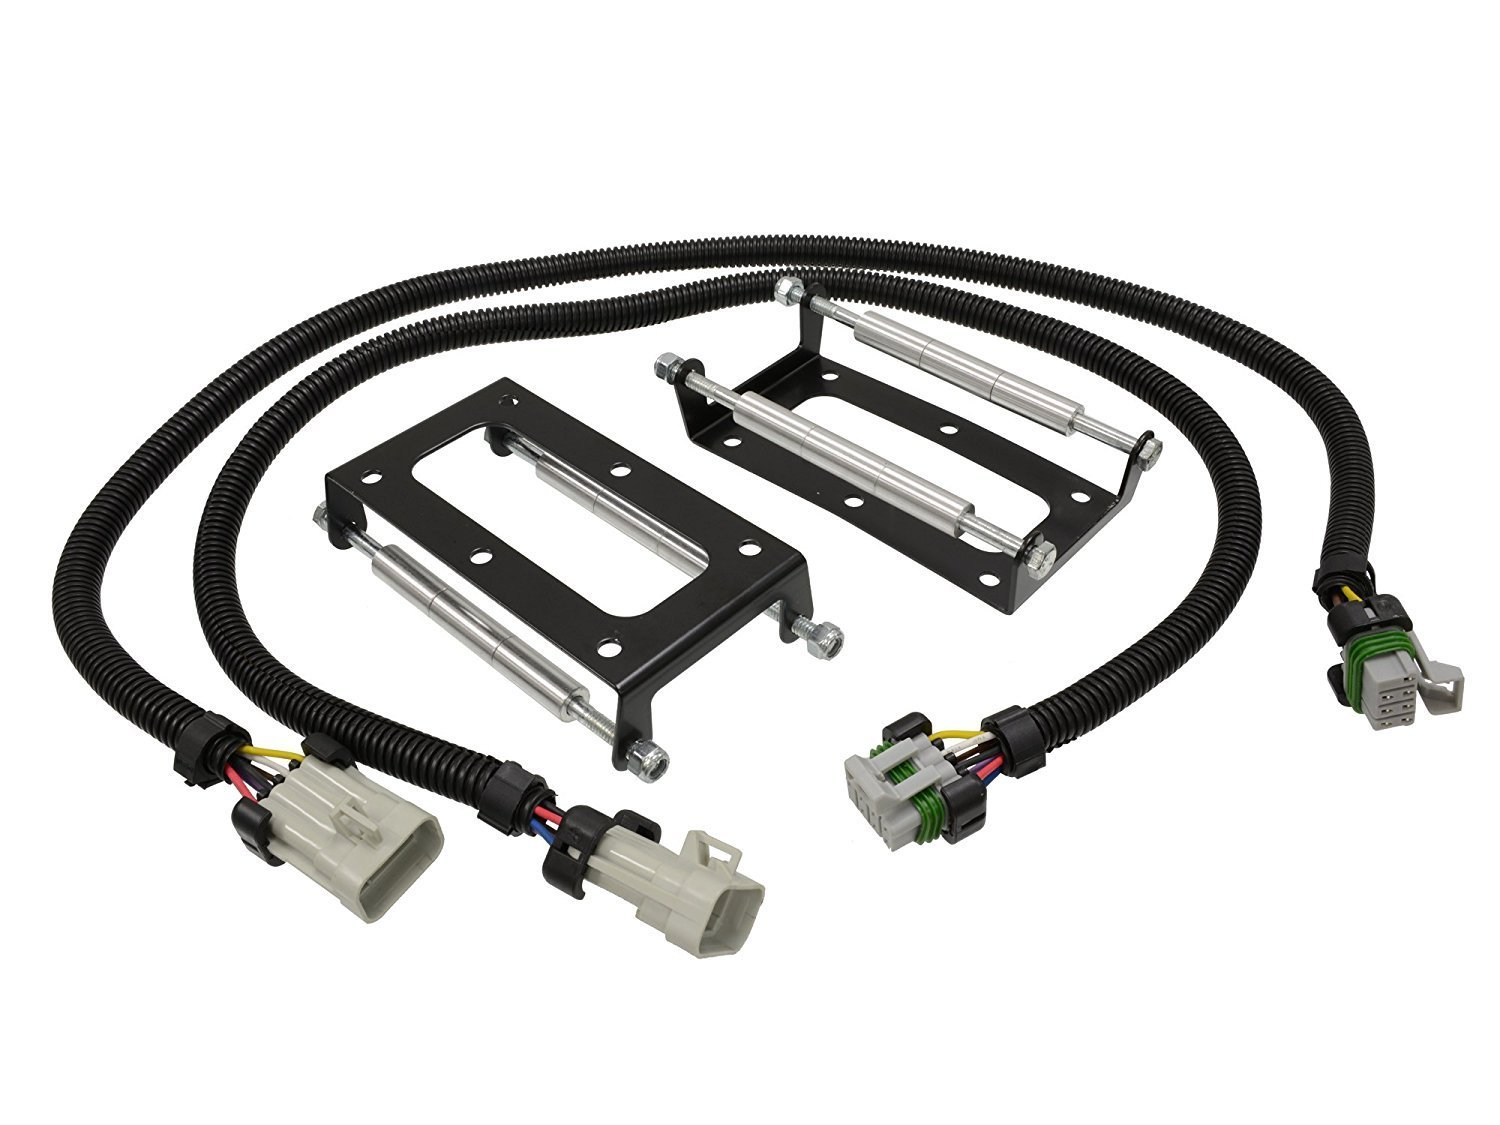 "Coil Pack Relocation Kit Bracket Mount - Fits LS2 LS3 LS4 LS7 LS9 LSX Powdercoated Black with 36"" Harnesses"